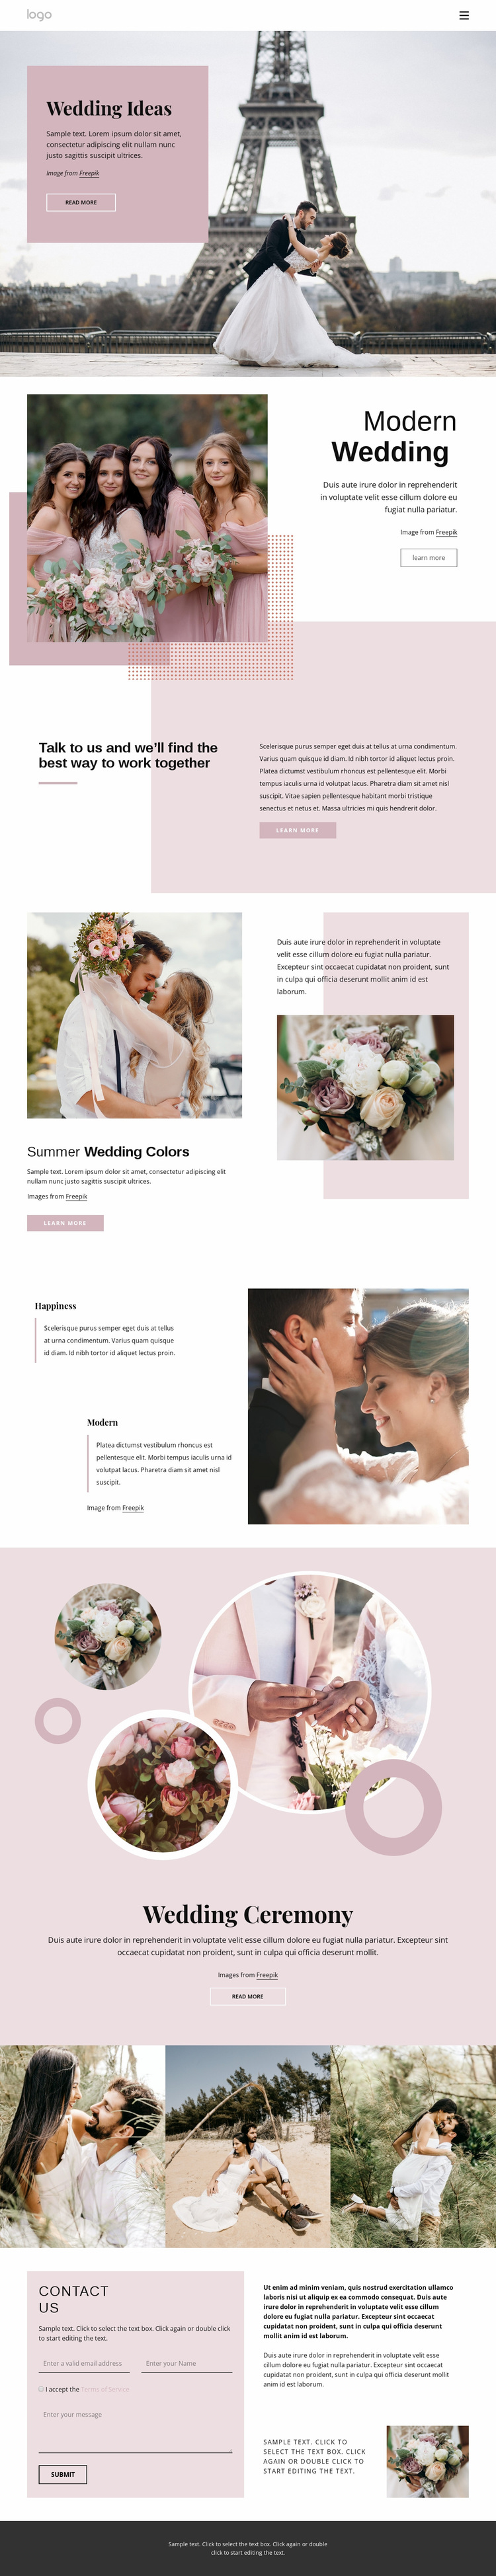 Unique wedding ceremony Website Design